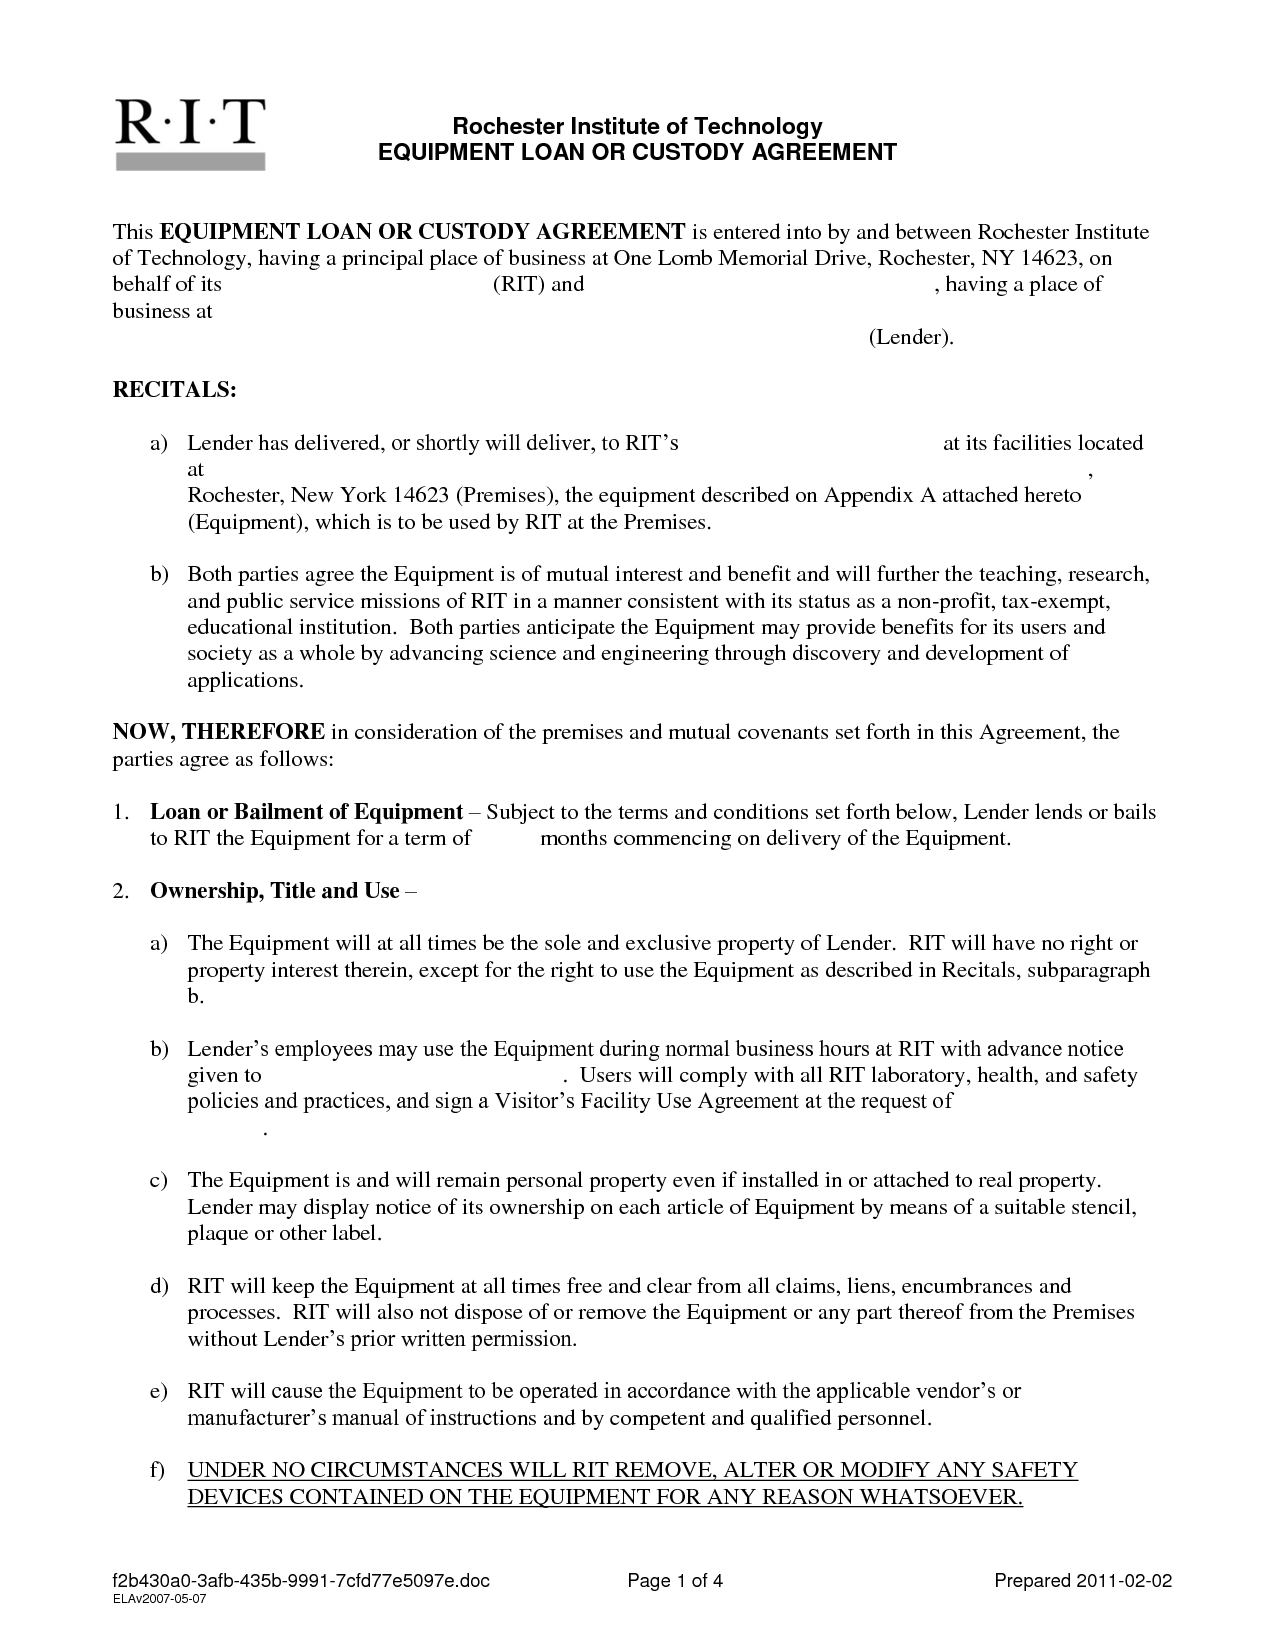 Simple Car Loan Agreement Template